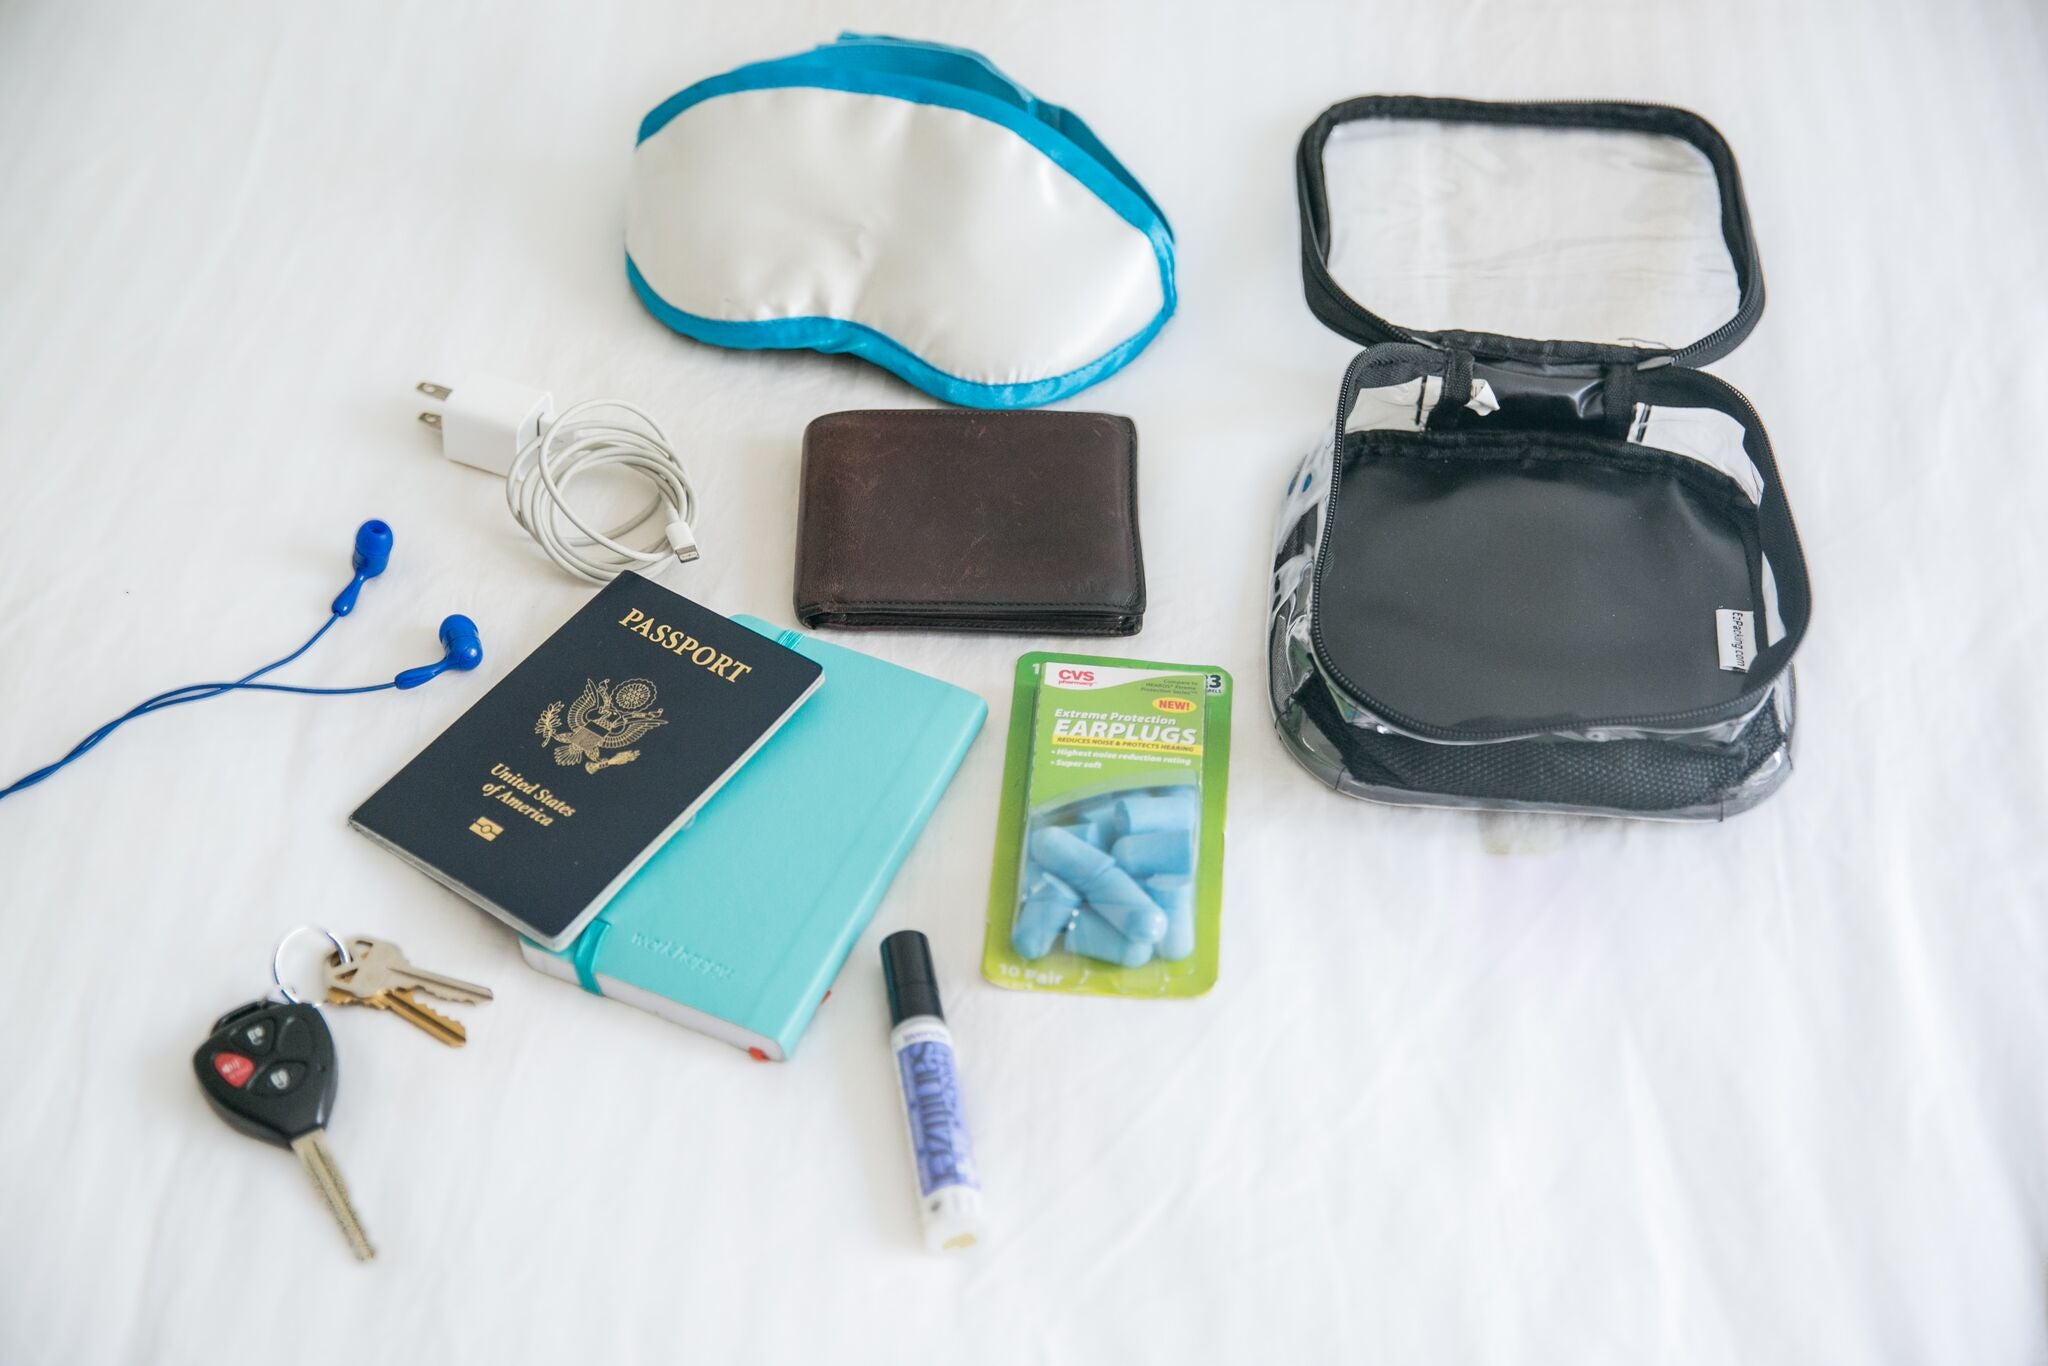 Extra small cube with passport and other travel valuables